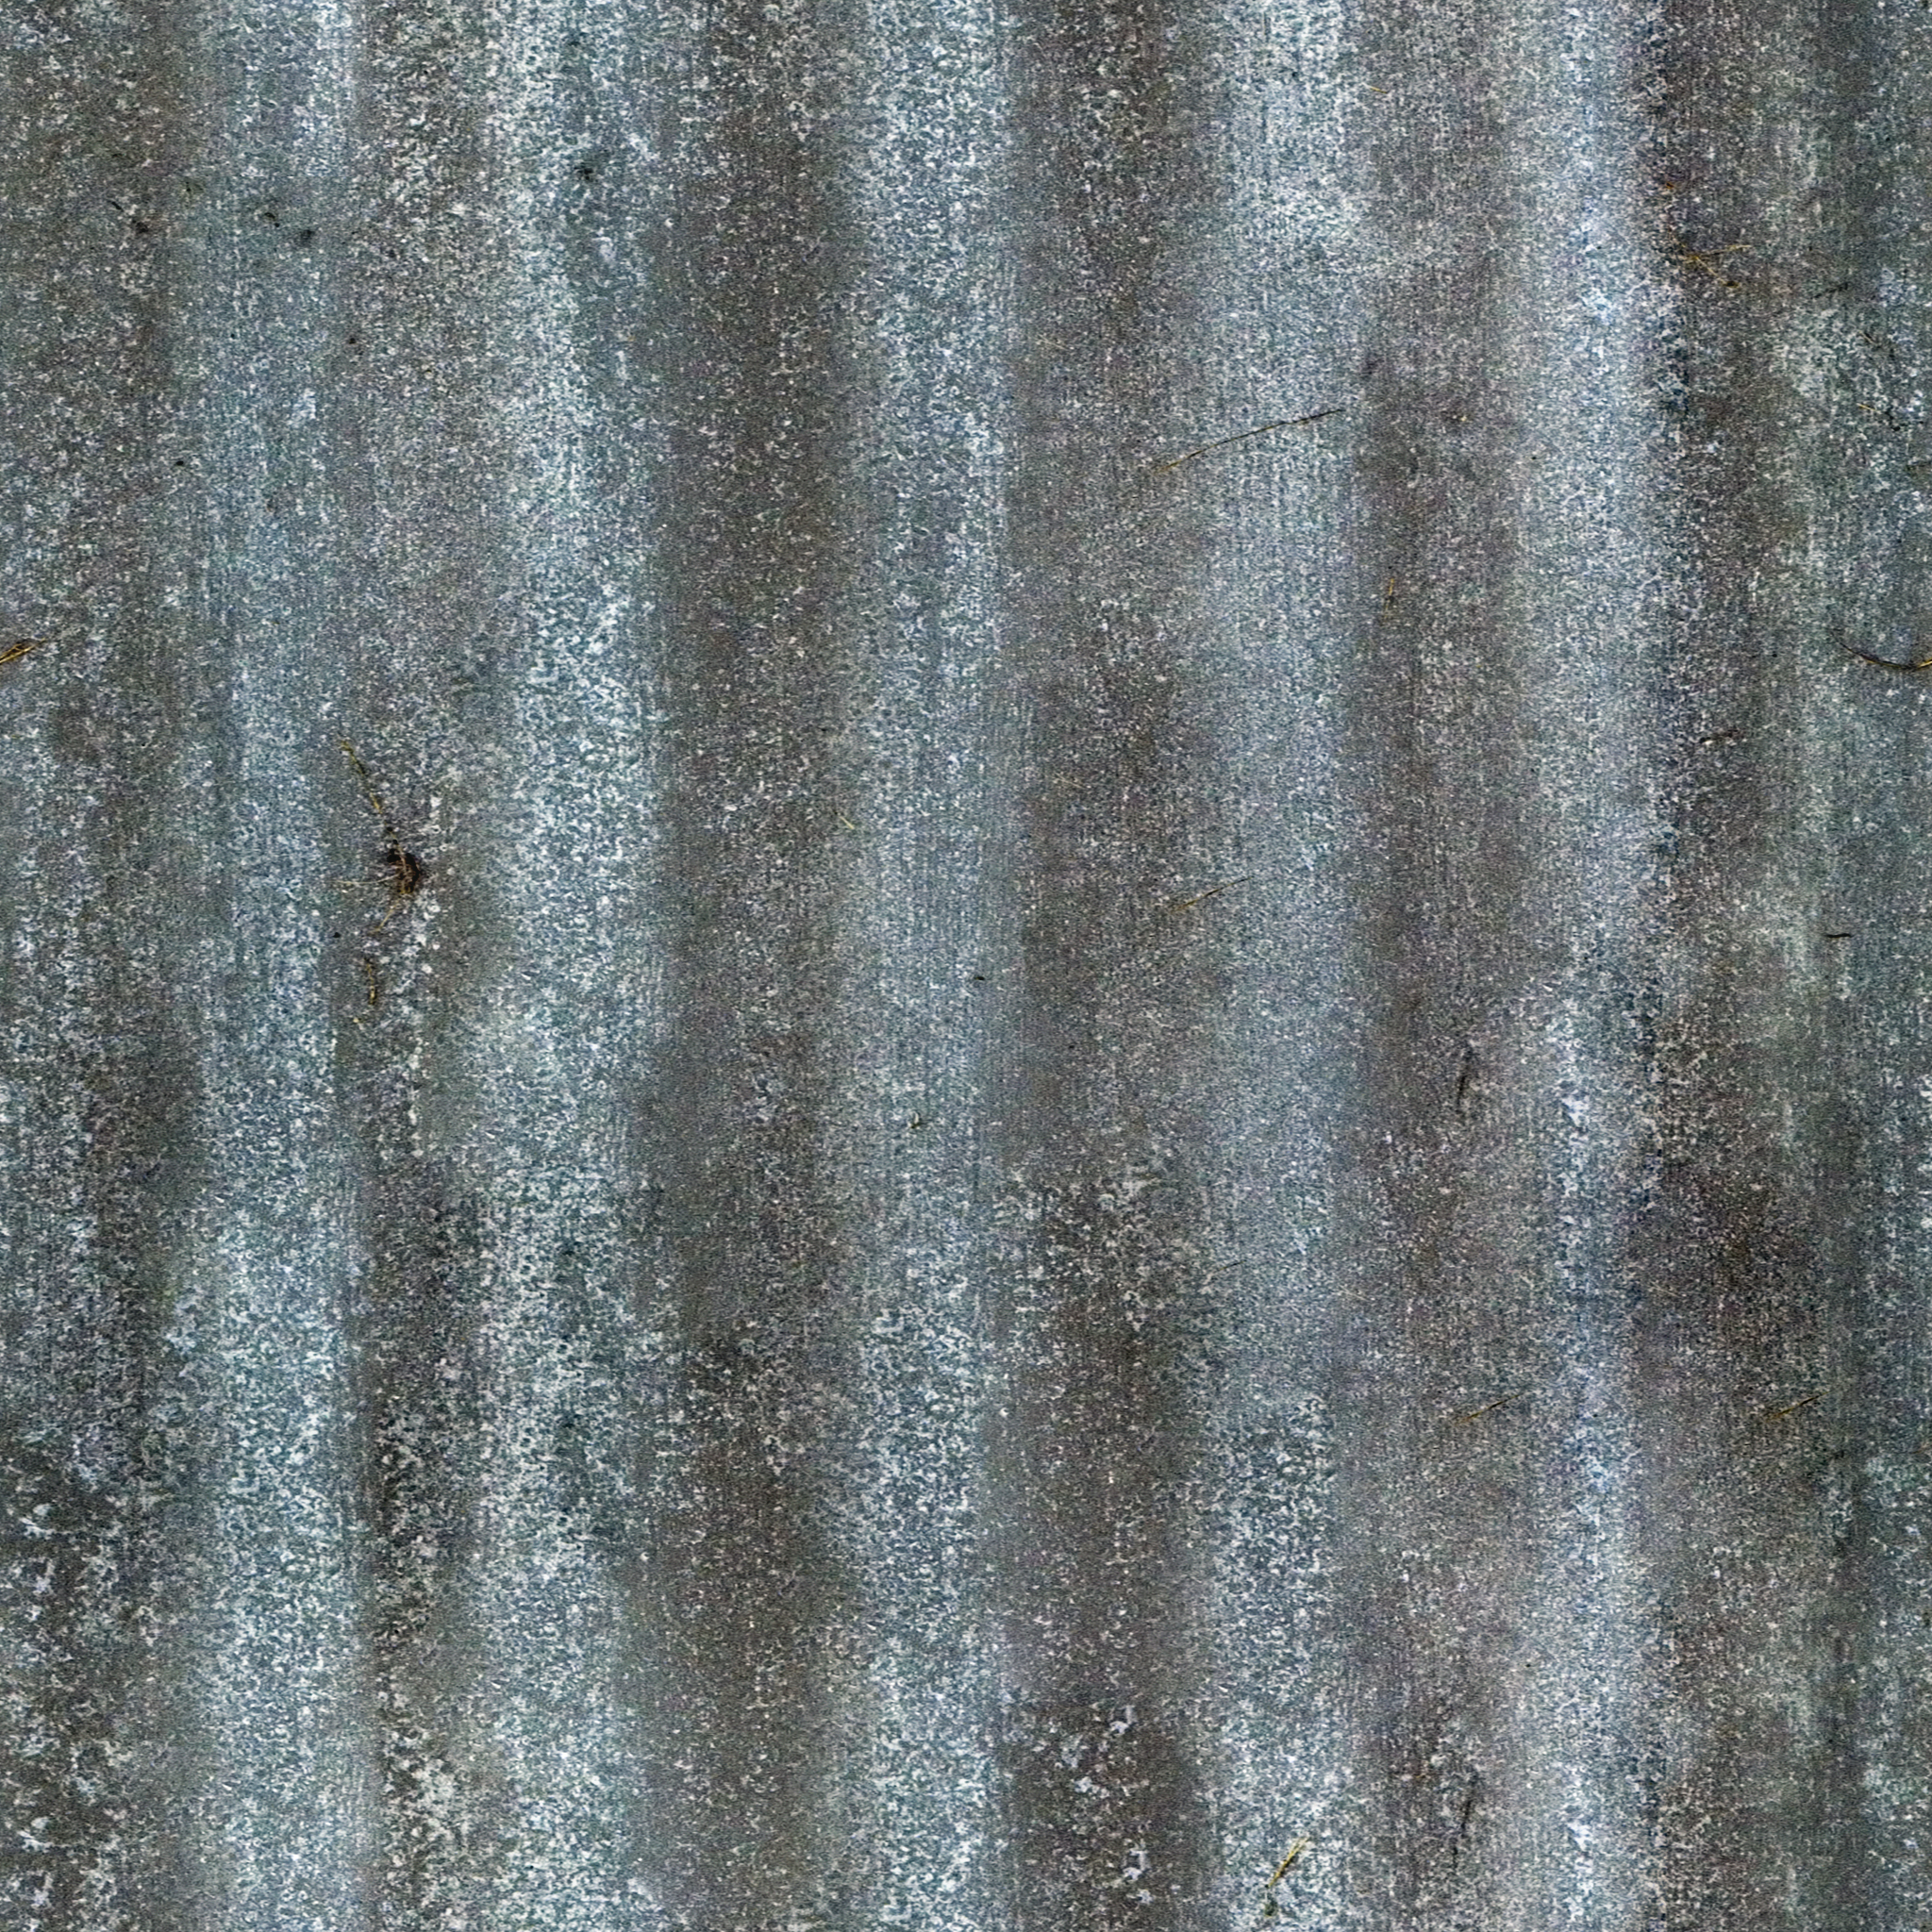 Eroded Corrugated Metal.jpg